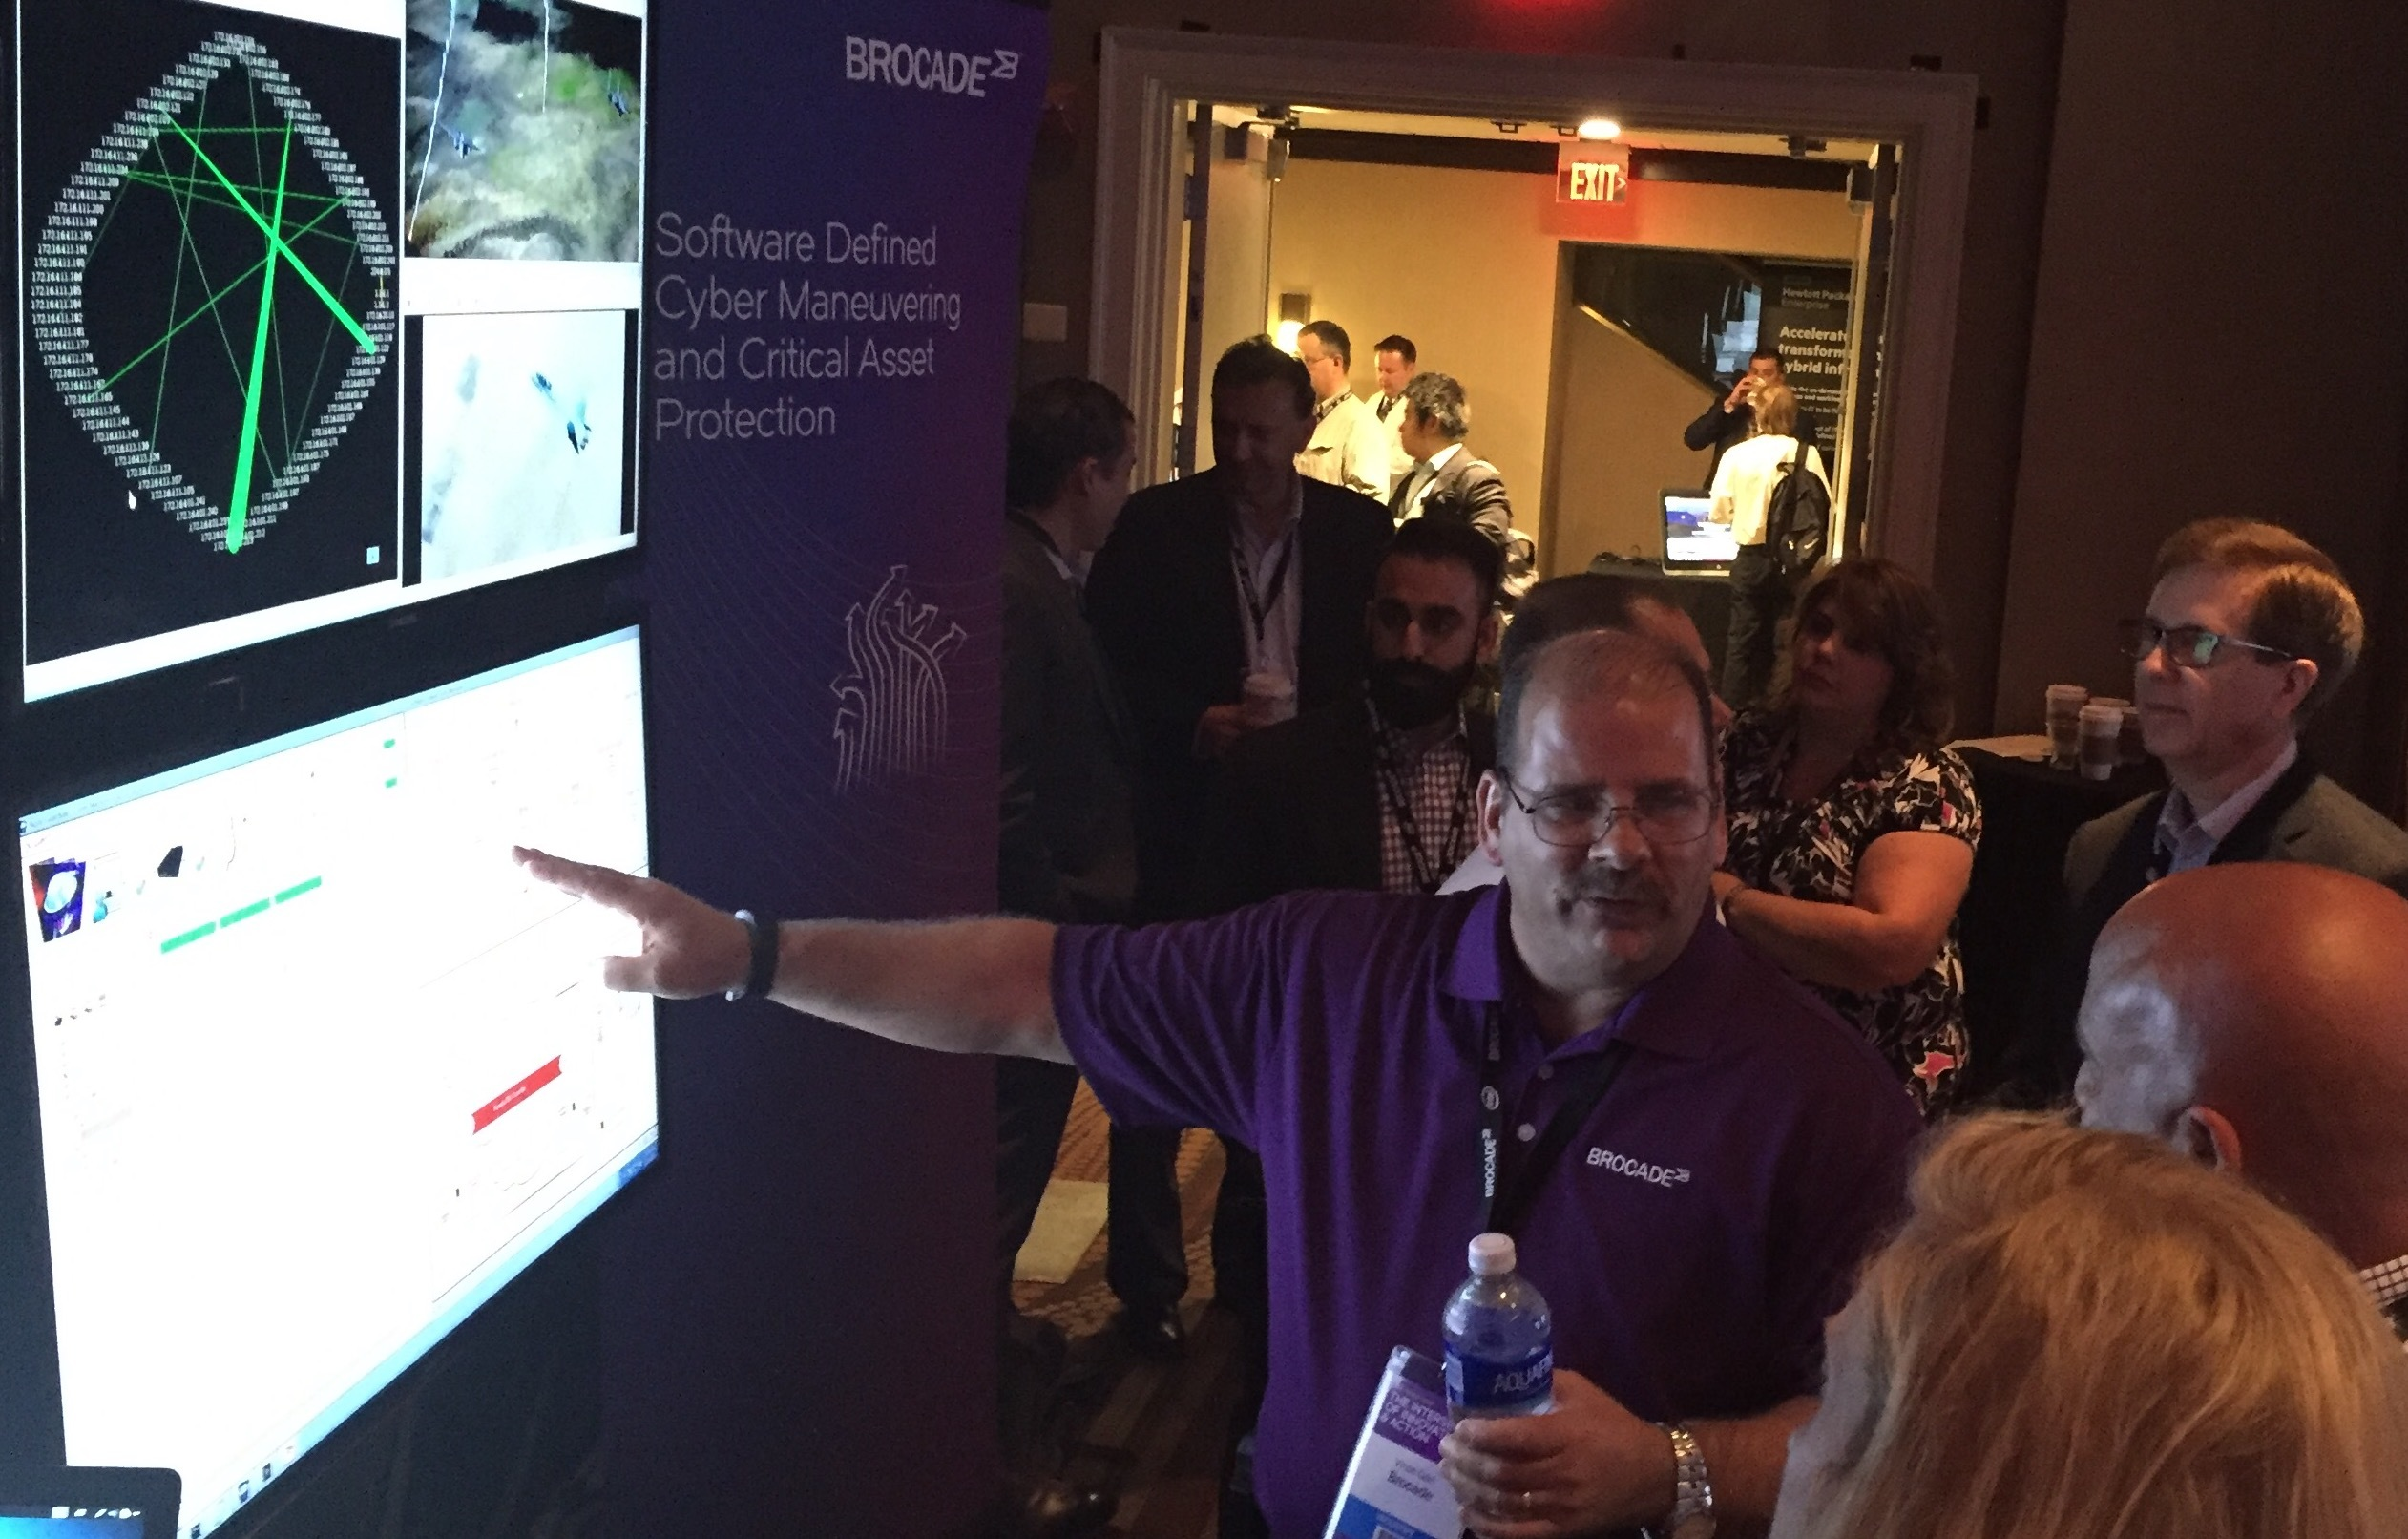 Brocade's Vince Garr demonstrates a prototype of the cyber maneuver engine at 2016 Federal Forum's Technology Pavillion